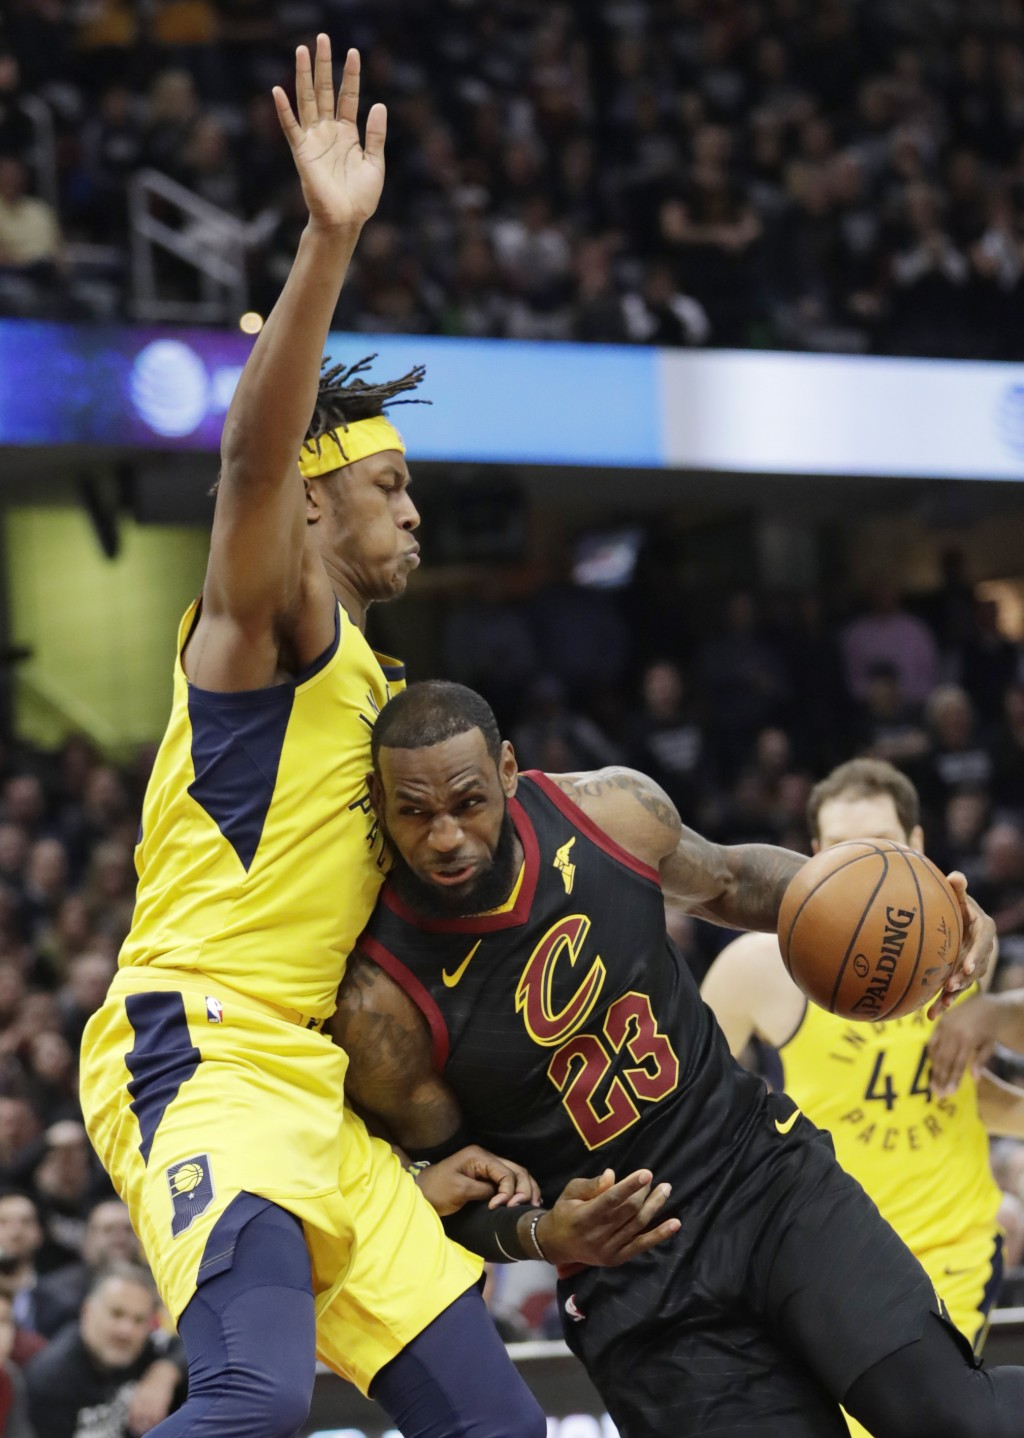 Cleveland Cavaliers' LeBron James (23) dries to the basket against Indiana Pacers' Myles Turner (33) in the first half of Game 7 of an NBA basketball ...